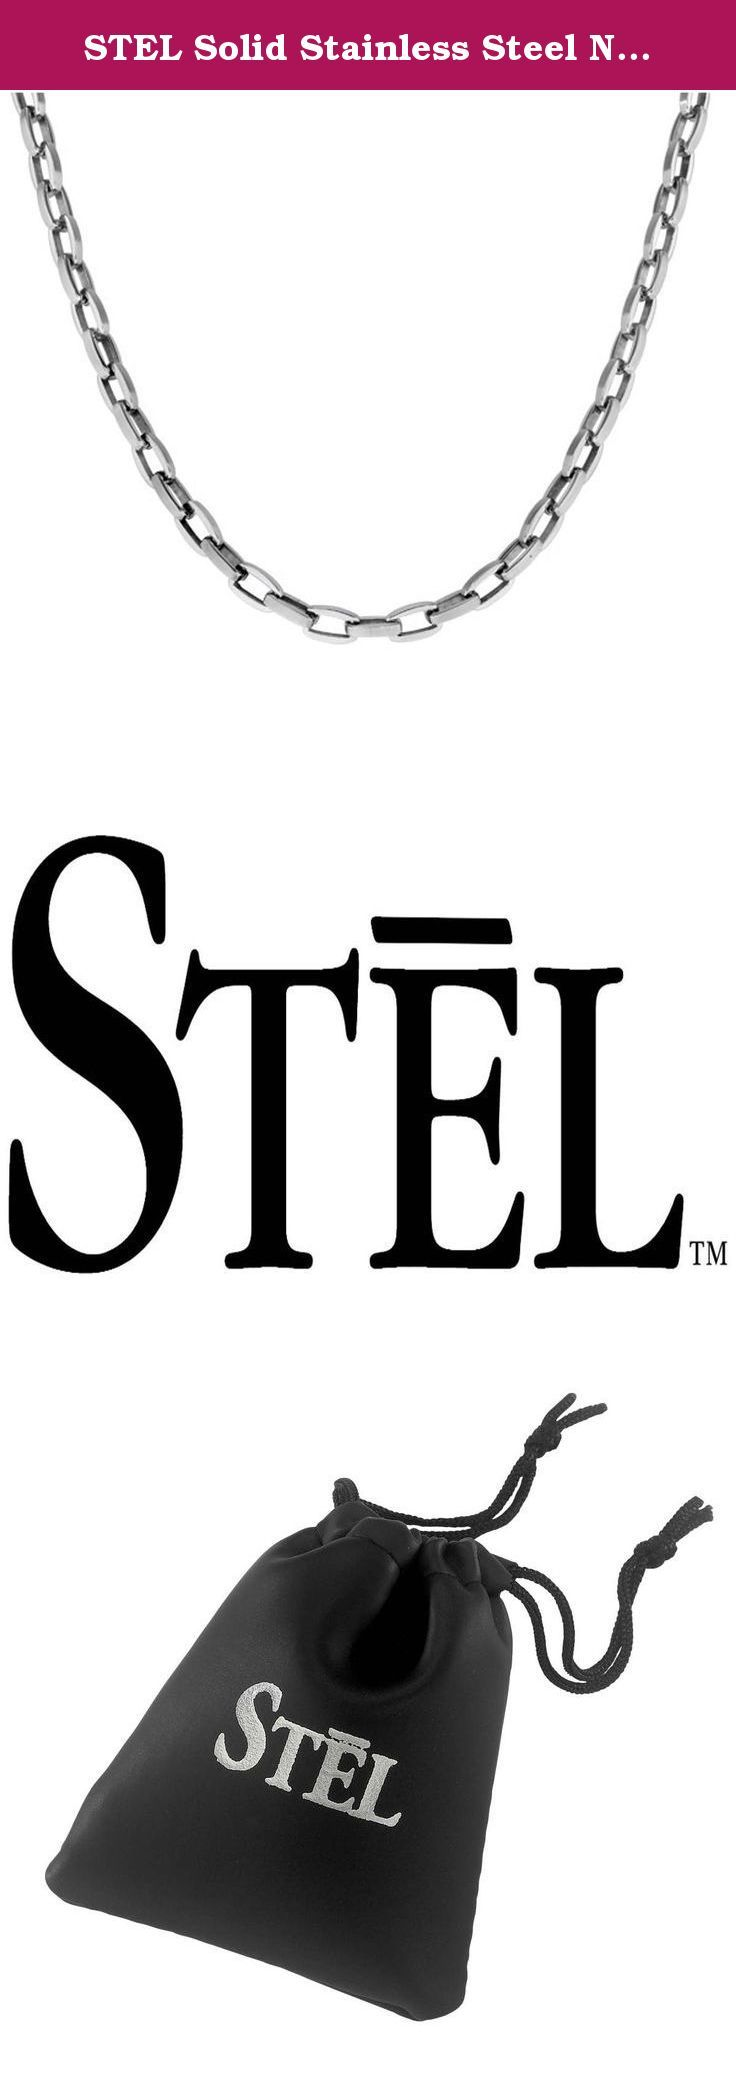 """STEL Solid Stainless Steel Necklace 22"""". A chain is only as strong as it's weakest link. No weak links here! Simple links in sturdy jewelry grade stainless steel creates a neck chain he can wear everyday. 22 inches in length."""